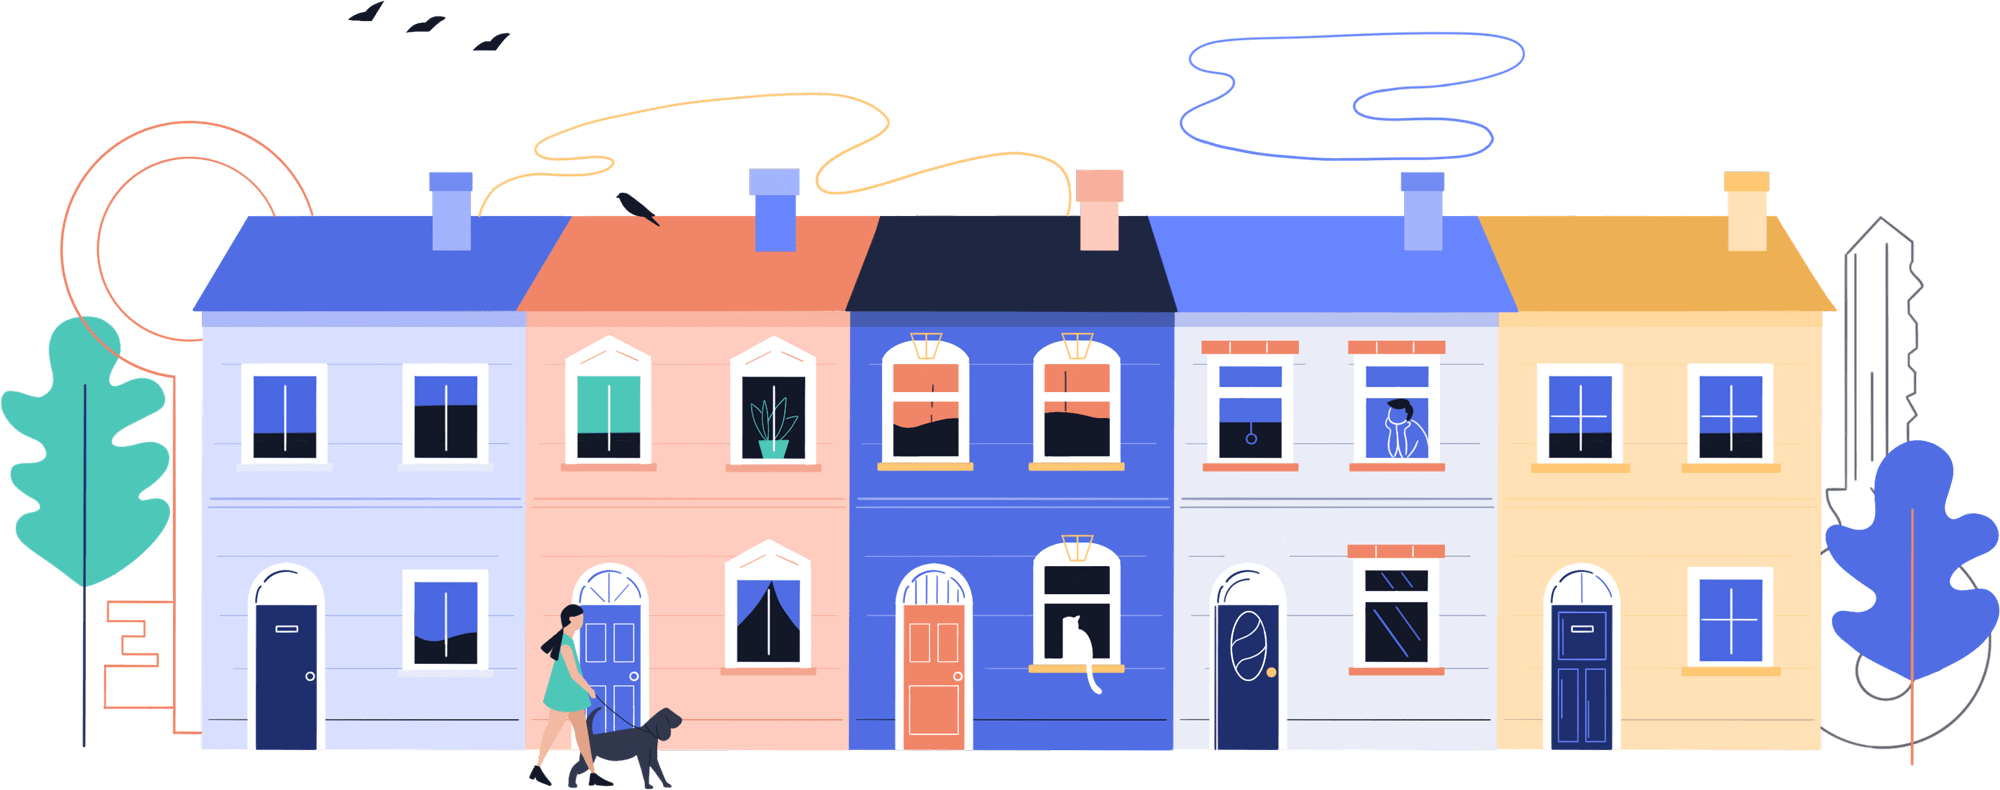 Cartoon terraced houses with female walking dog